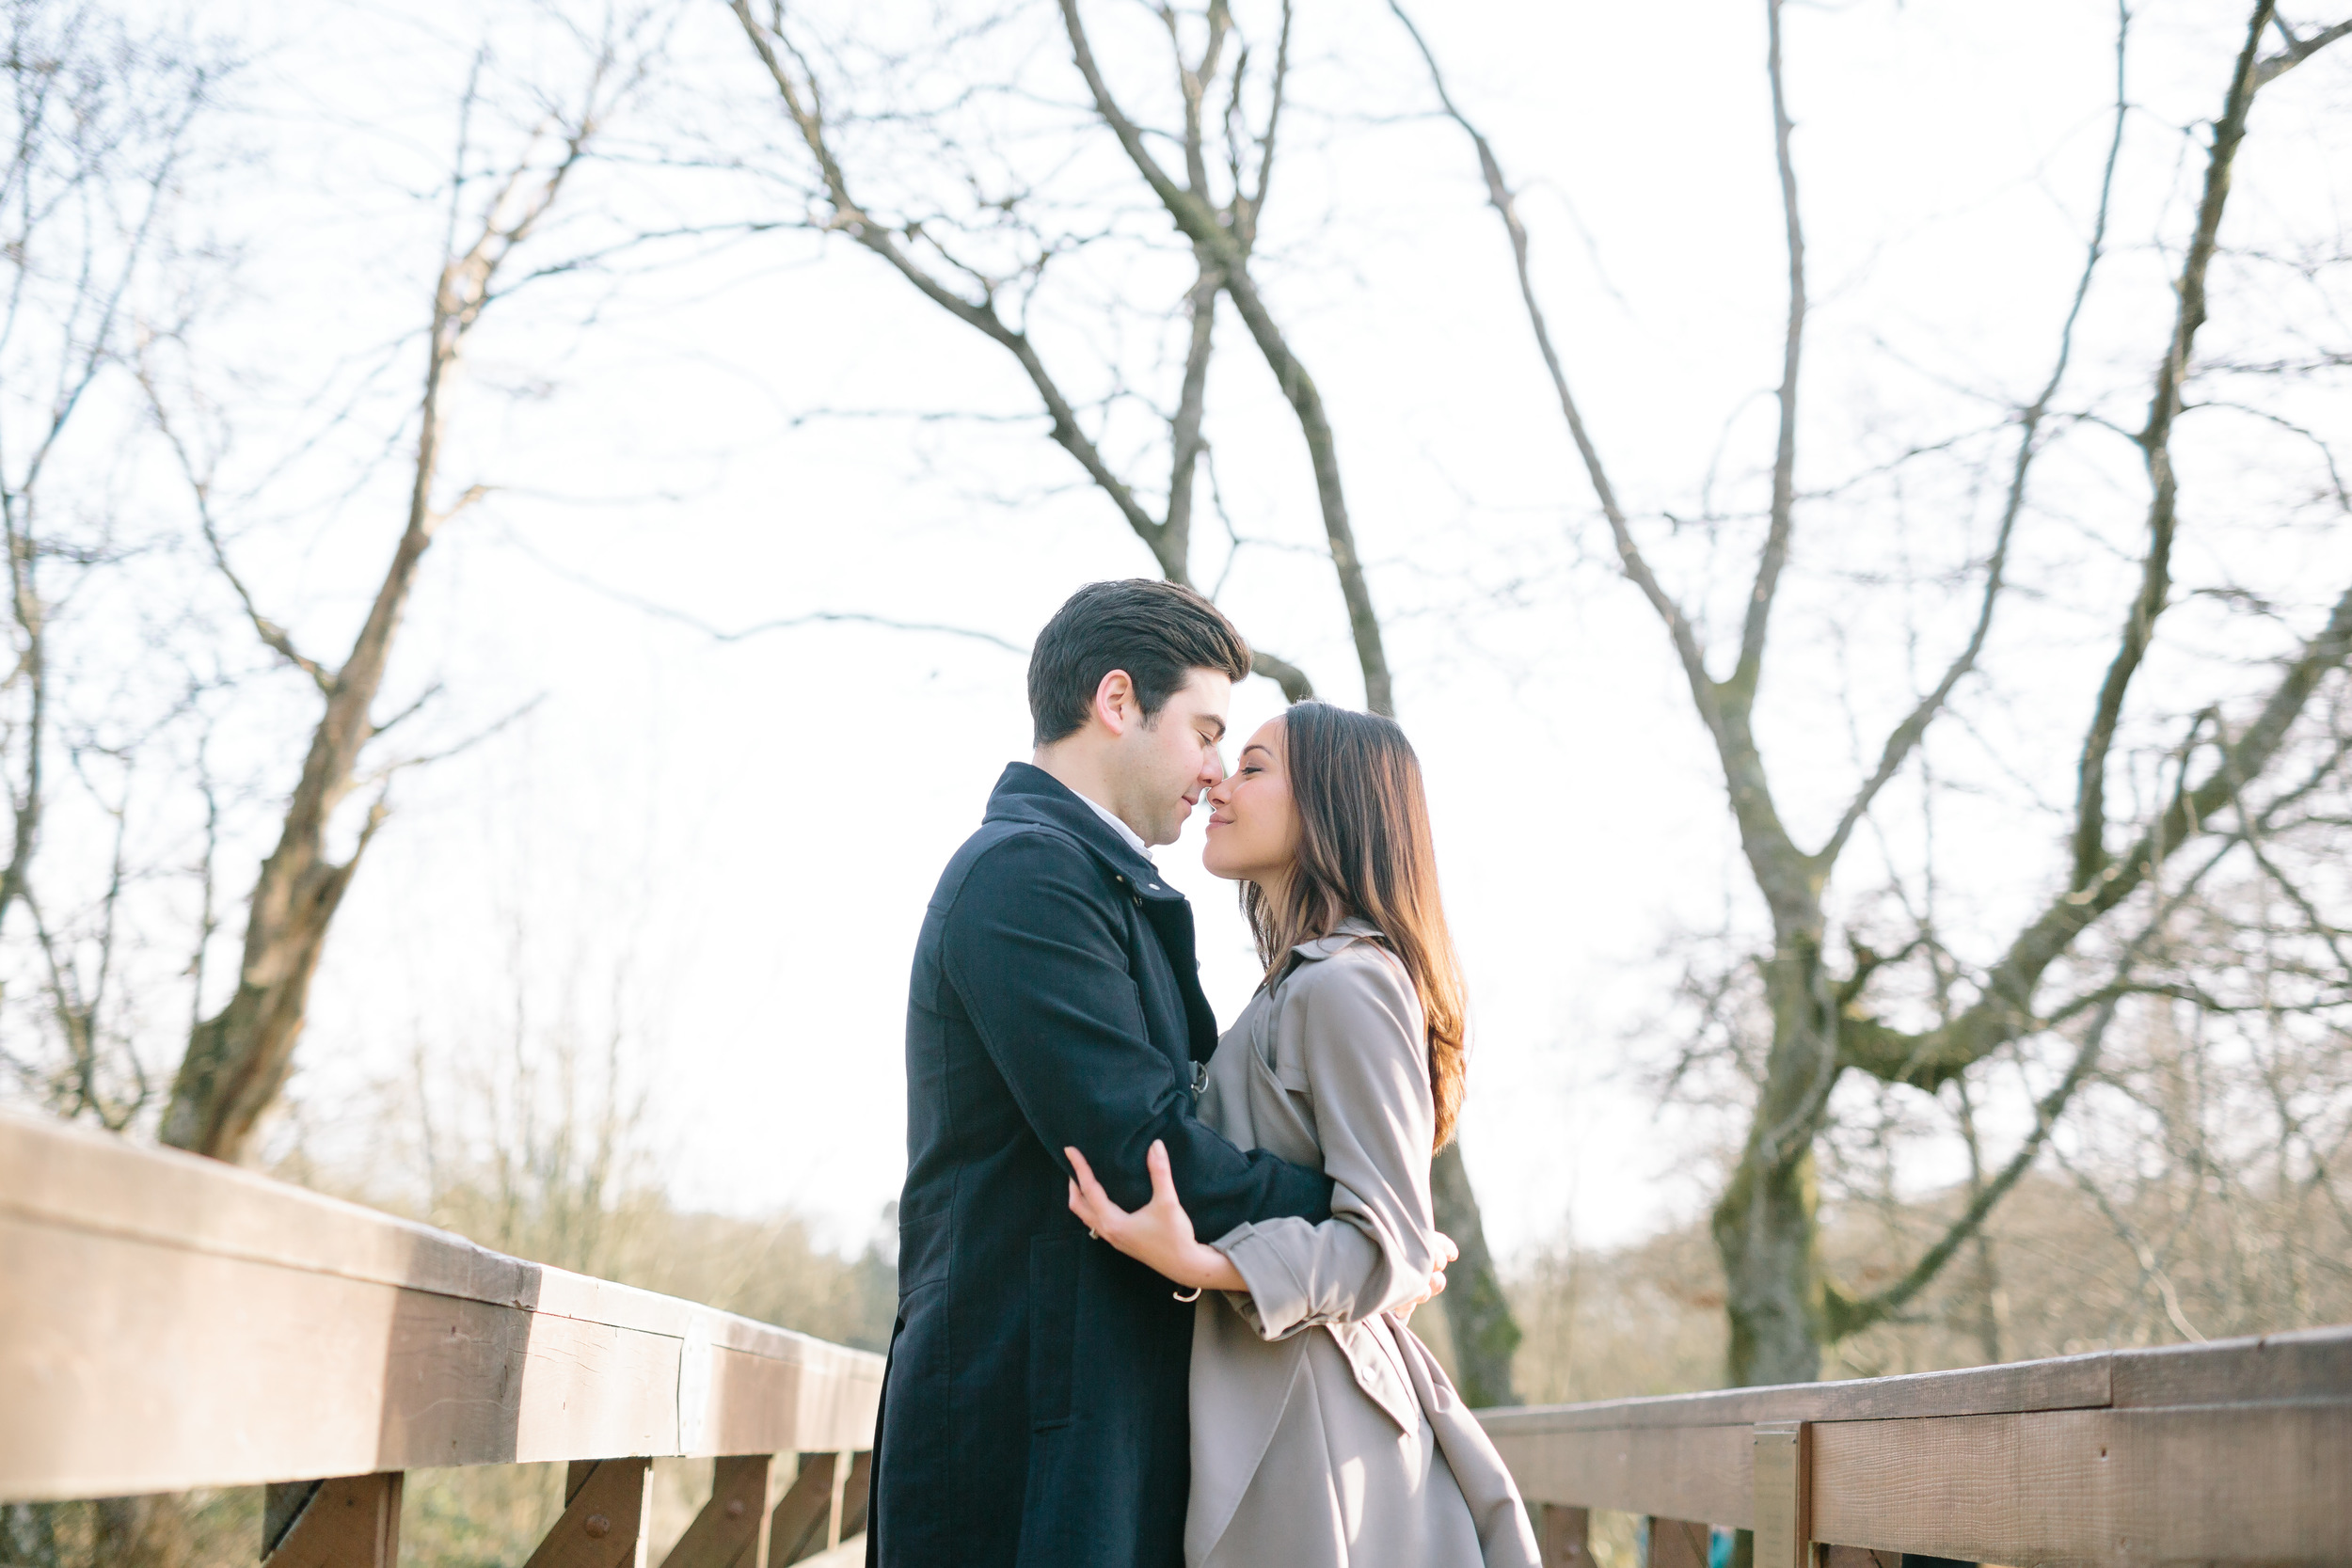 suzanne_li_photography_loch_lomand_pre_wedding-50.jpg